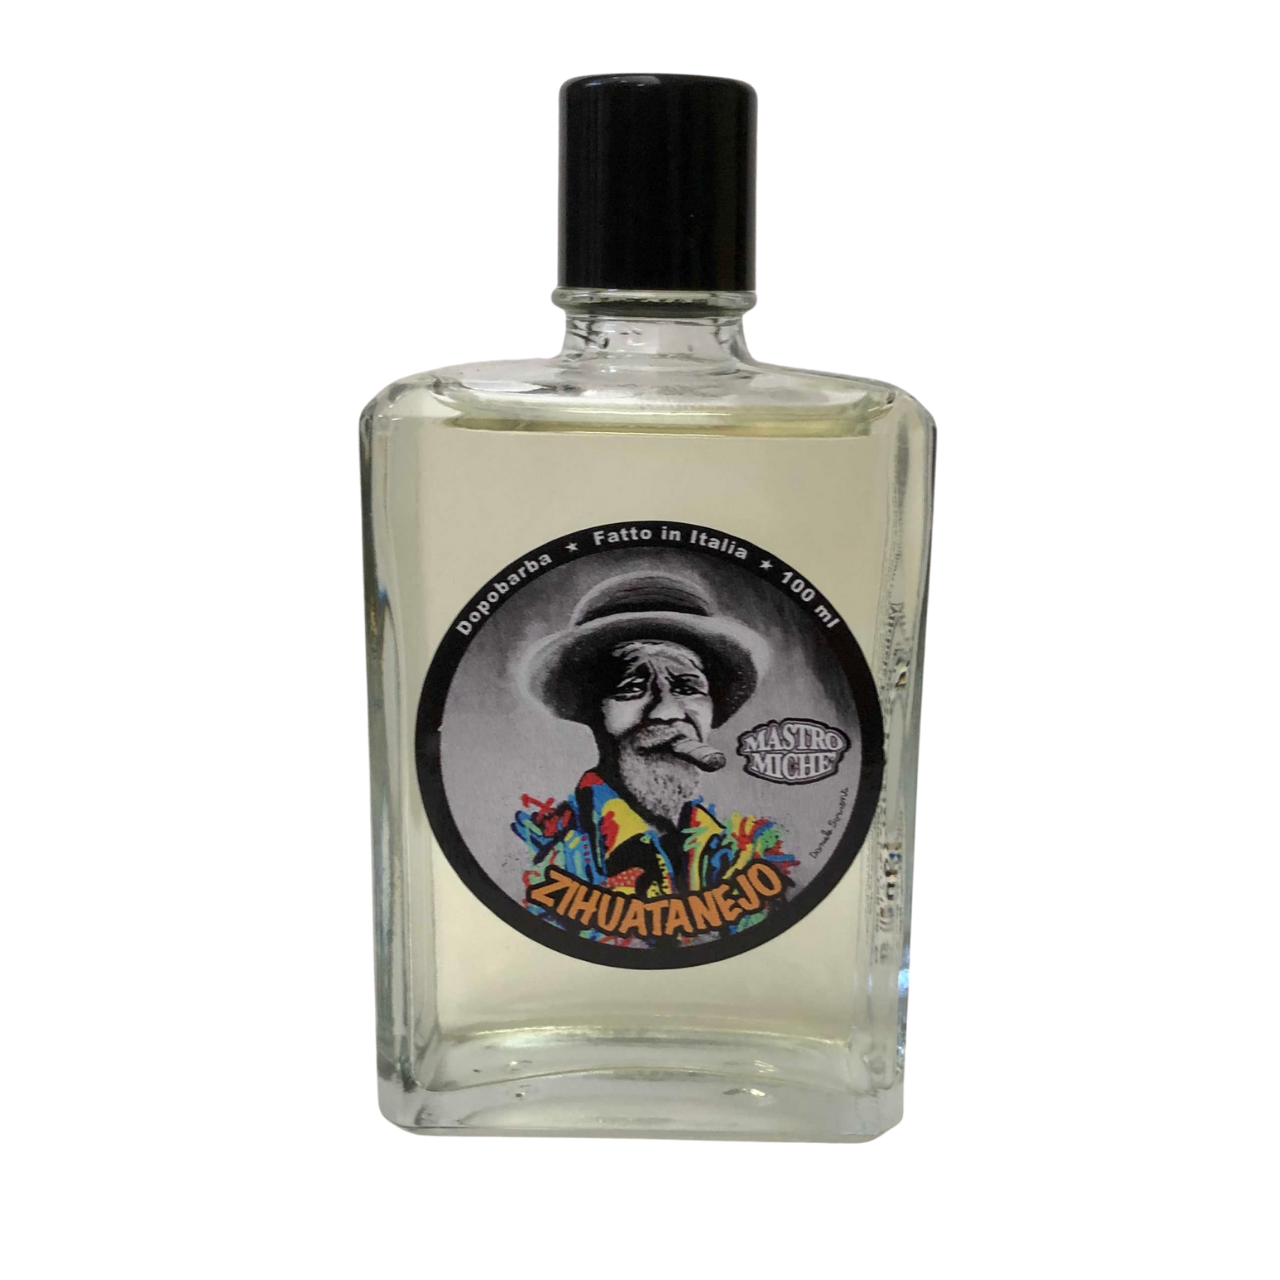 Mastro Miche Zihuatanejo Aftershave | Agent Shave